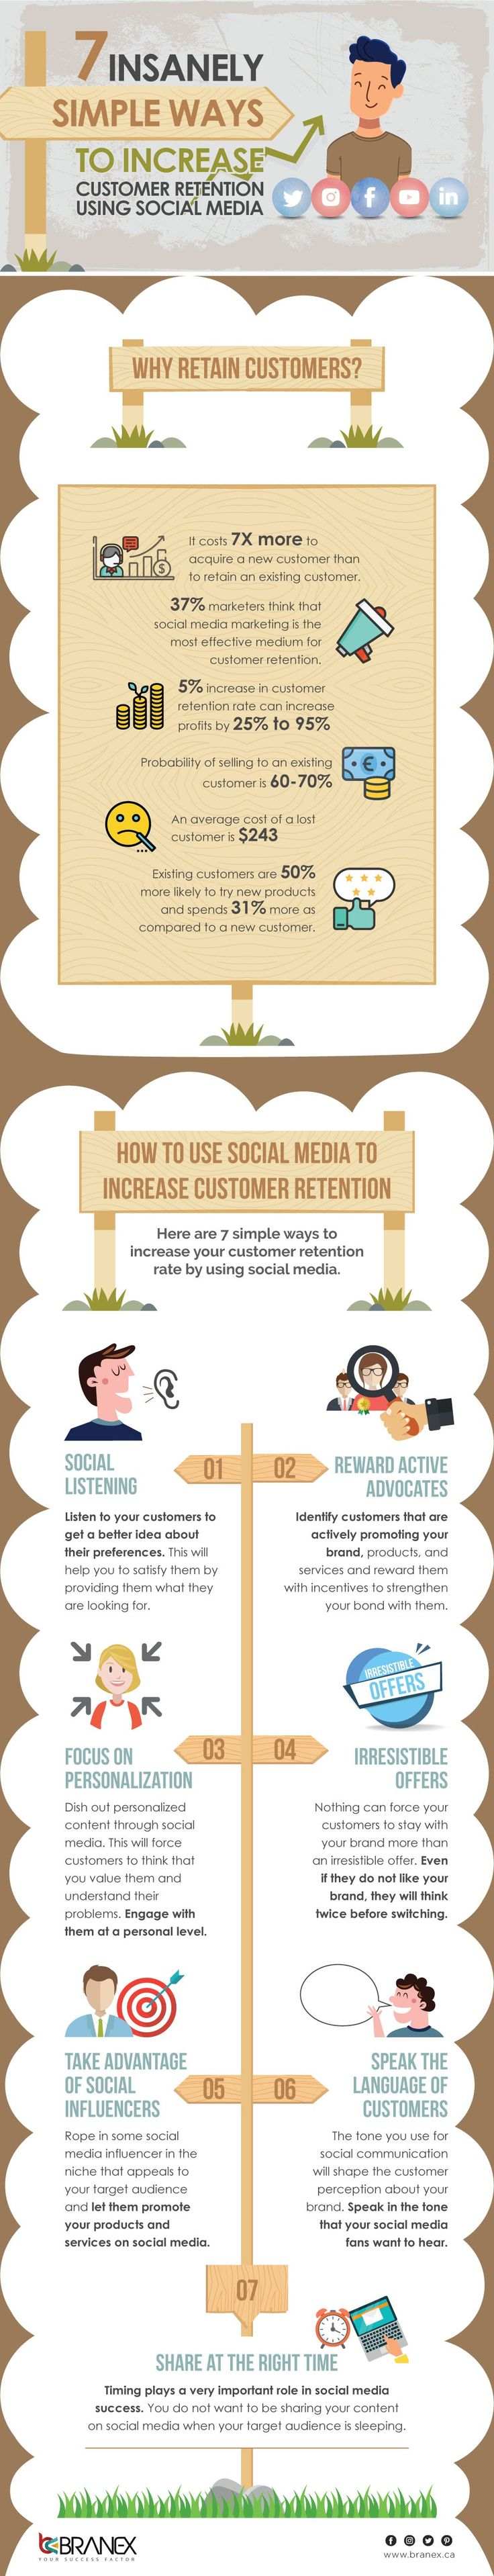 7 Insanely Simple Ways to Increase Customer Retention Using Social Media [Infographic] | Social Media Today